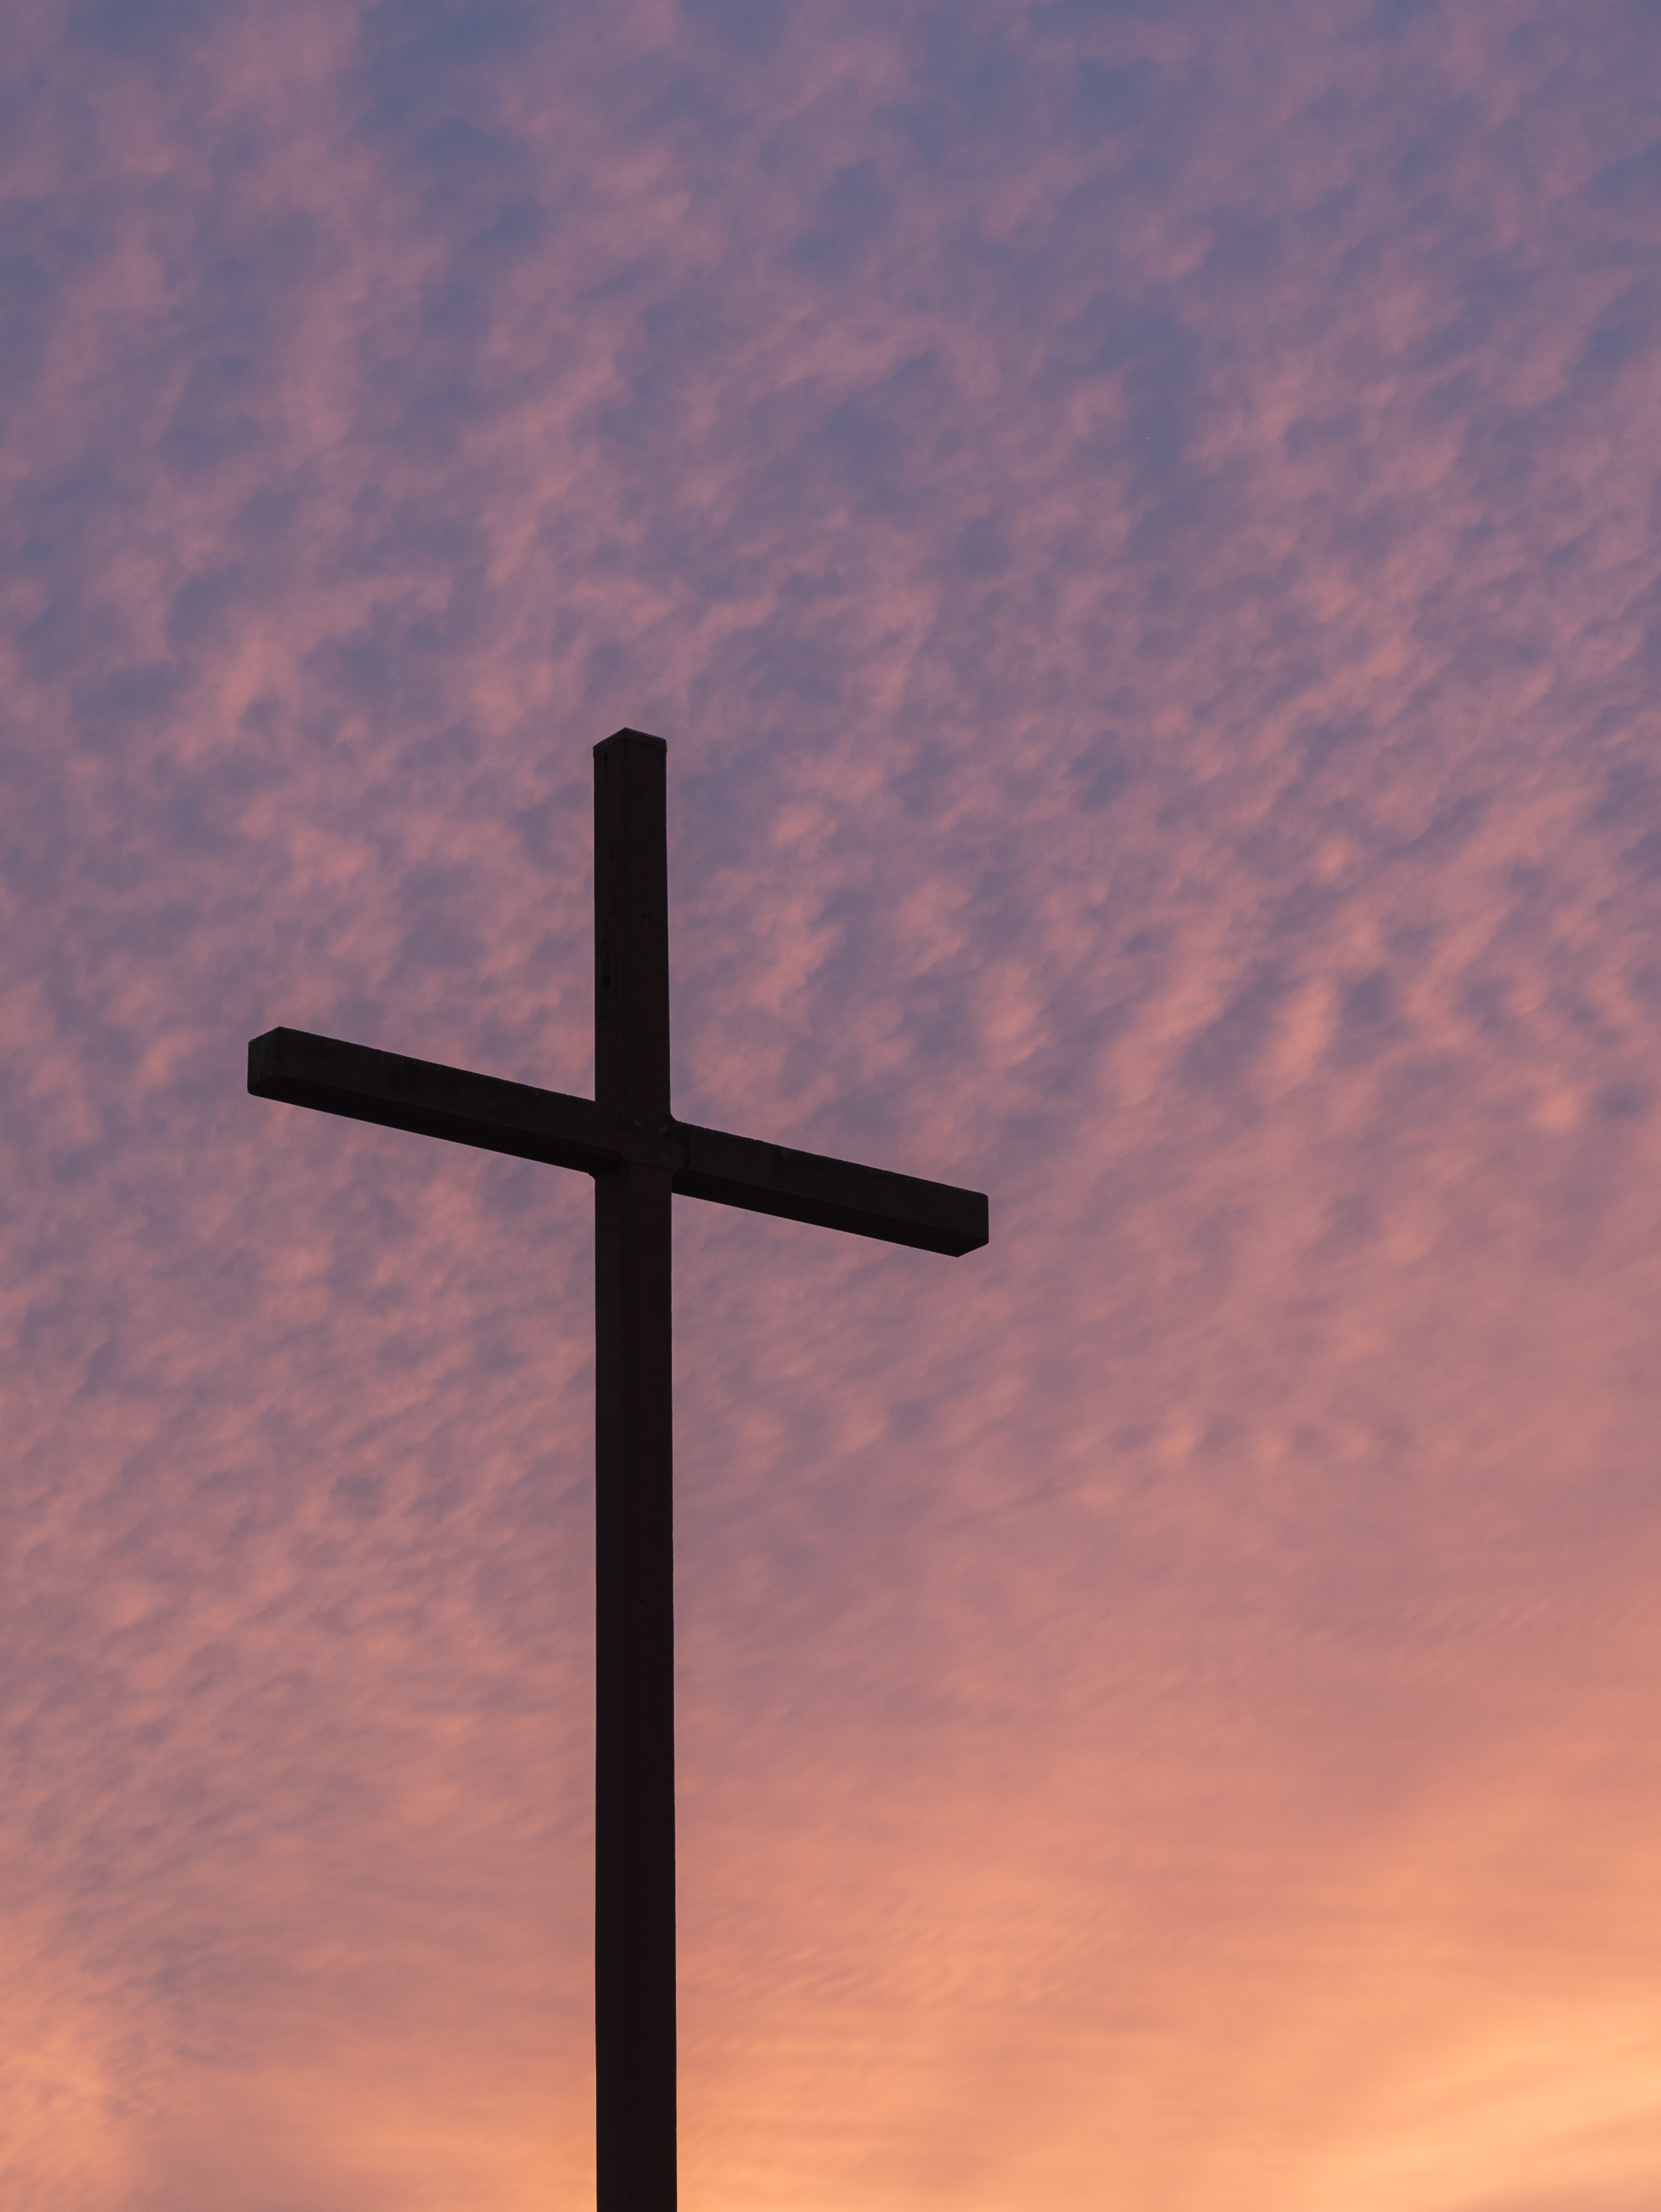 A crucifix of cross in front of a purple and orange sunset sky